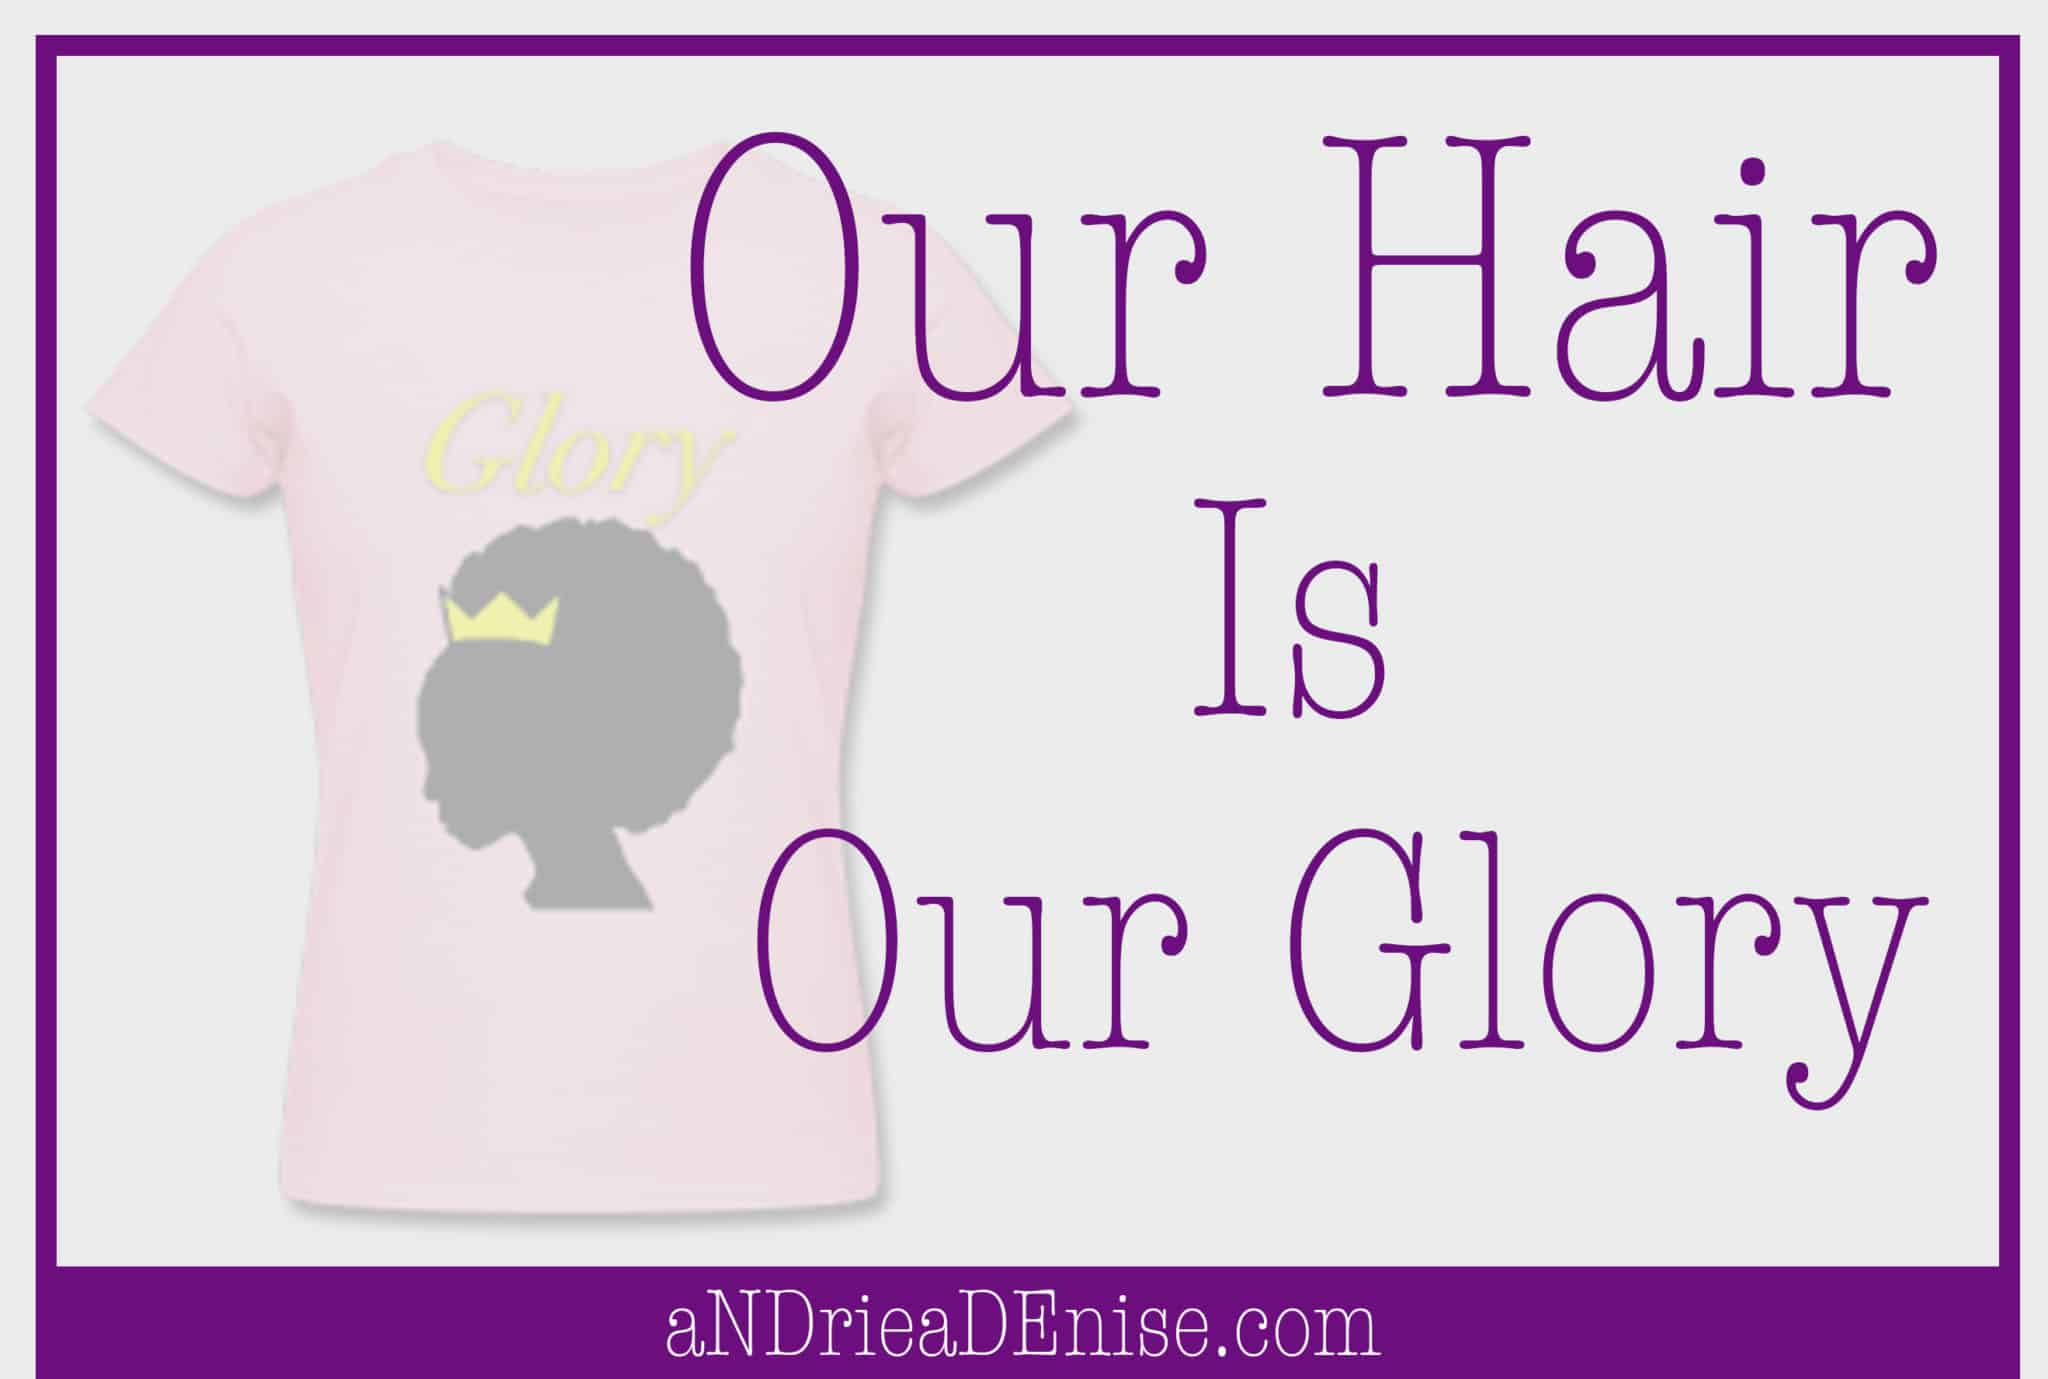 It's more than hair. It's our glory!